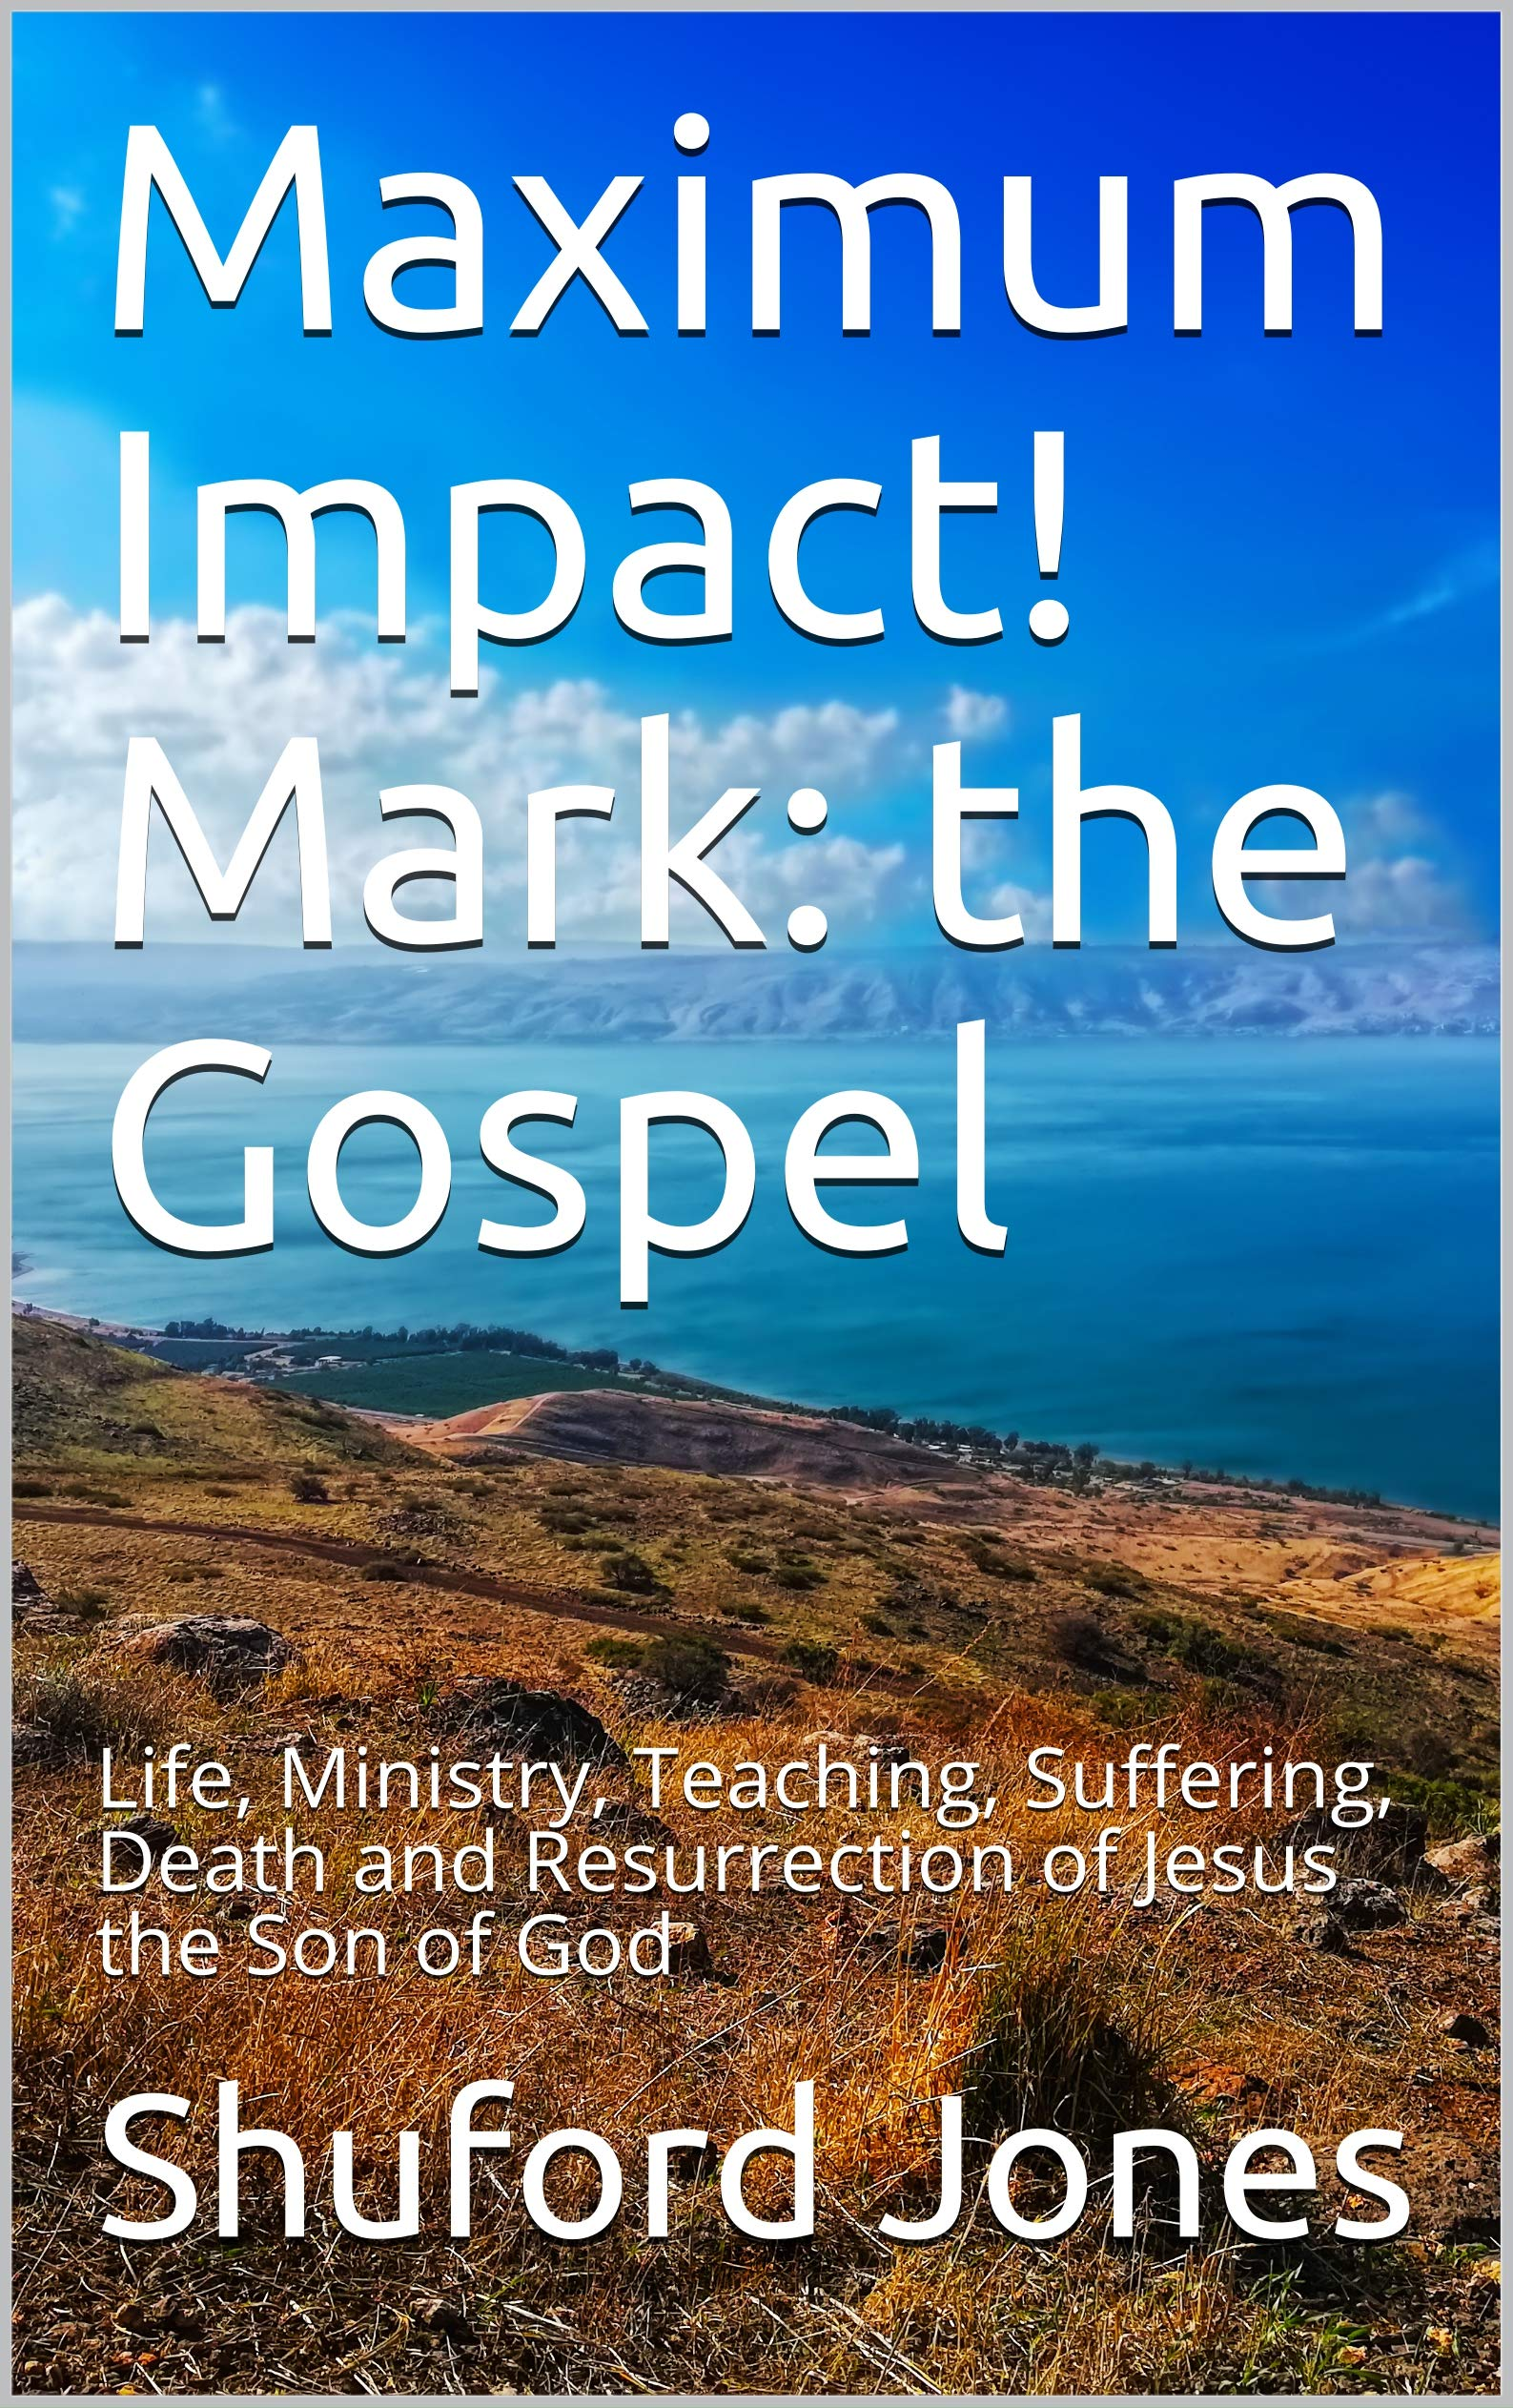 Maximum Impact! Mark: the Gospel: Life, Ministry, Teaching, Suffering, Death and Resurrection of Jesus the Son of God